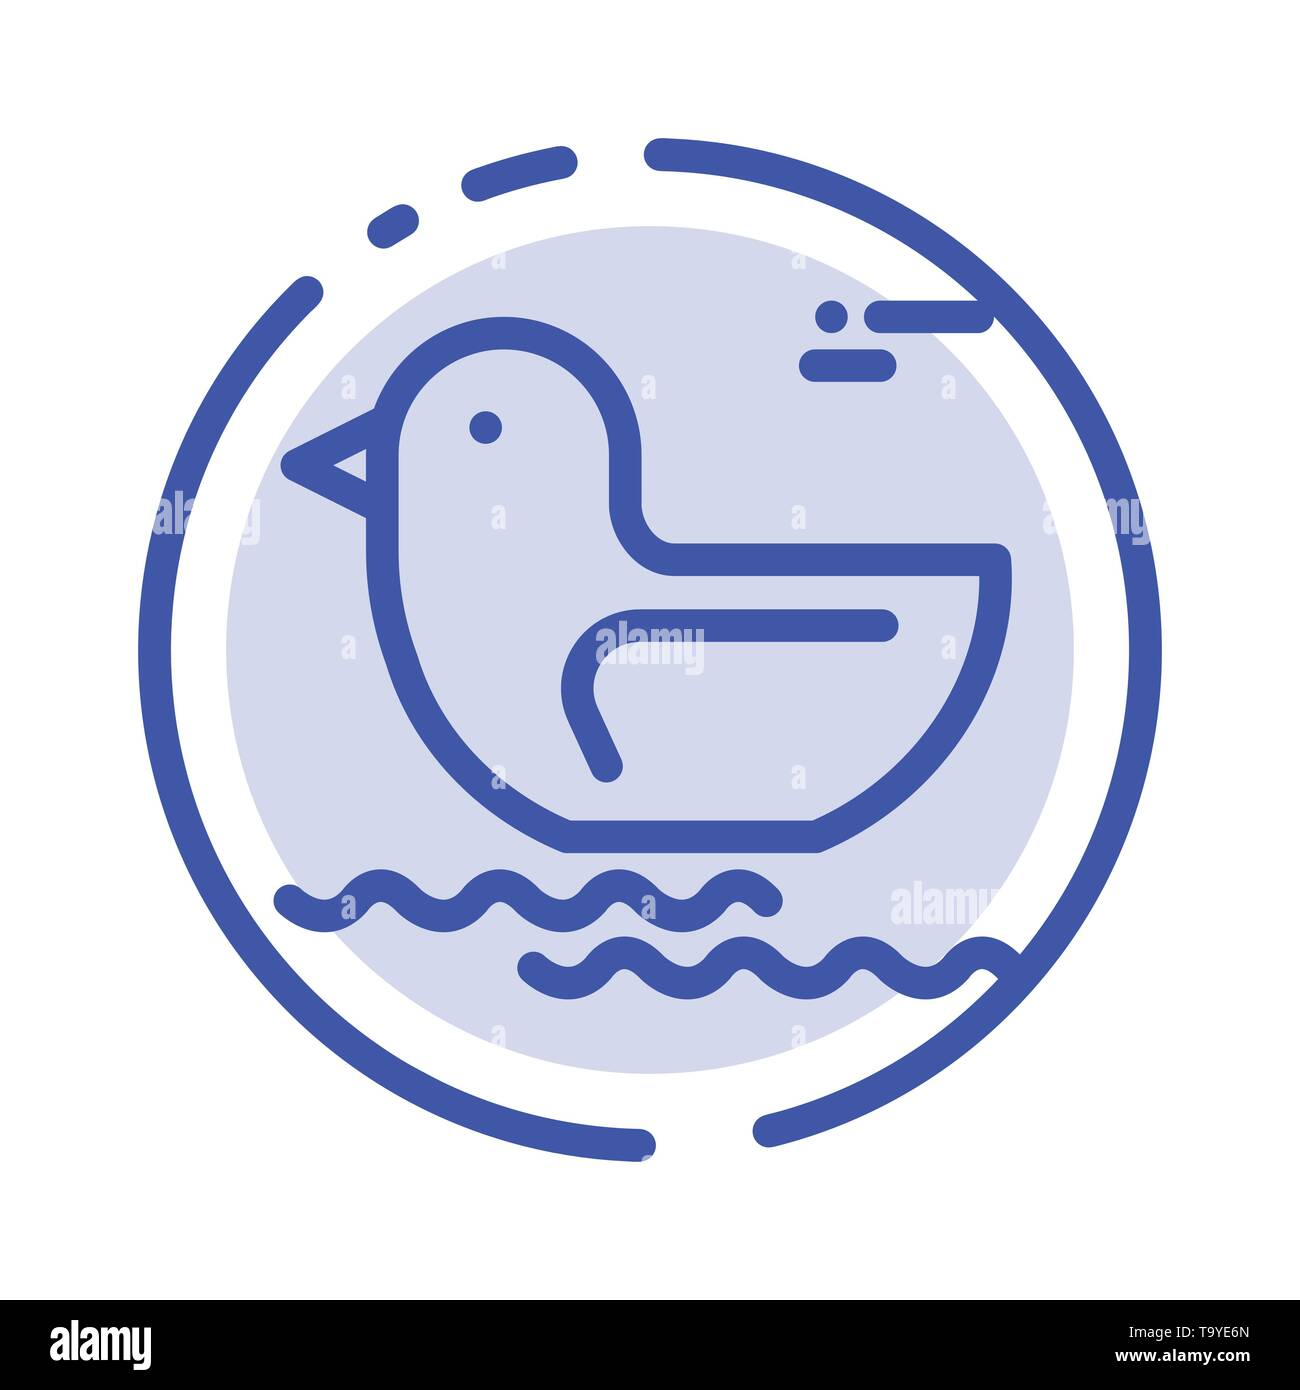 Duck, River, Canada Blue Dotted Line Line Icon - Stock Image